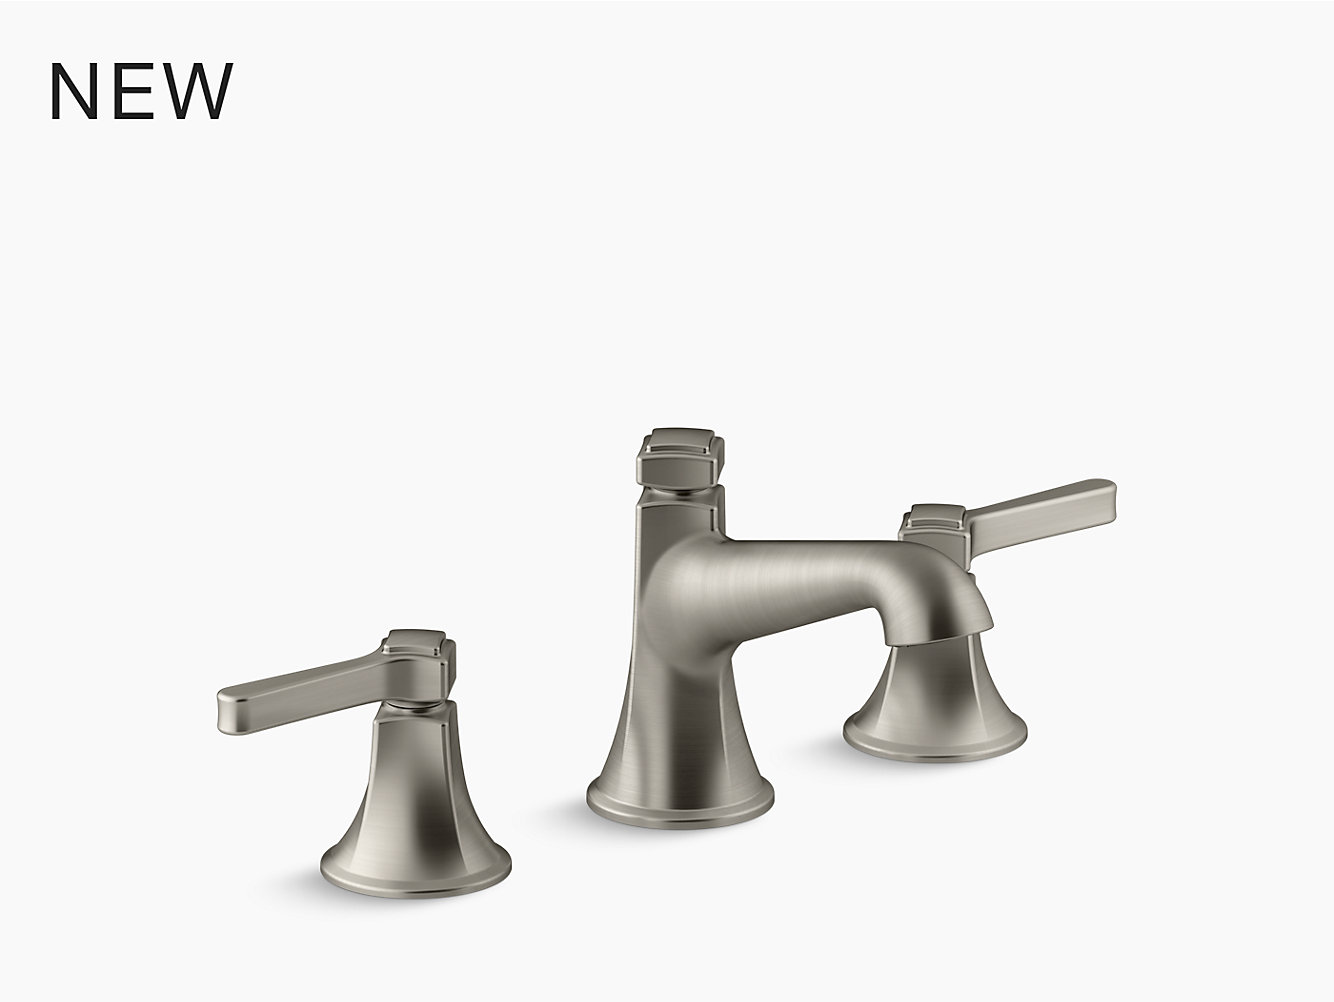 number of handles 1 kitchen sink faucets kitchen faucets simplice single hole or three hole kitchen sink faucet with 15 3 8